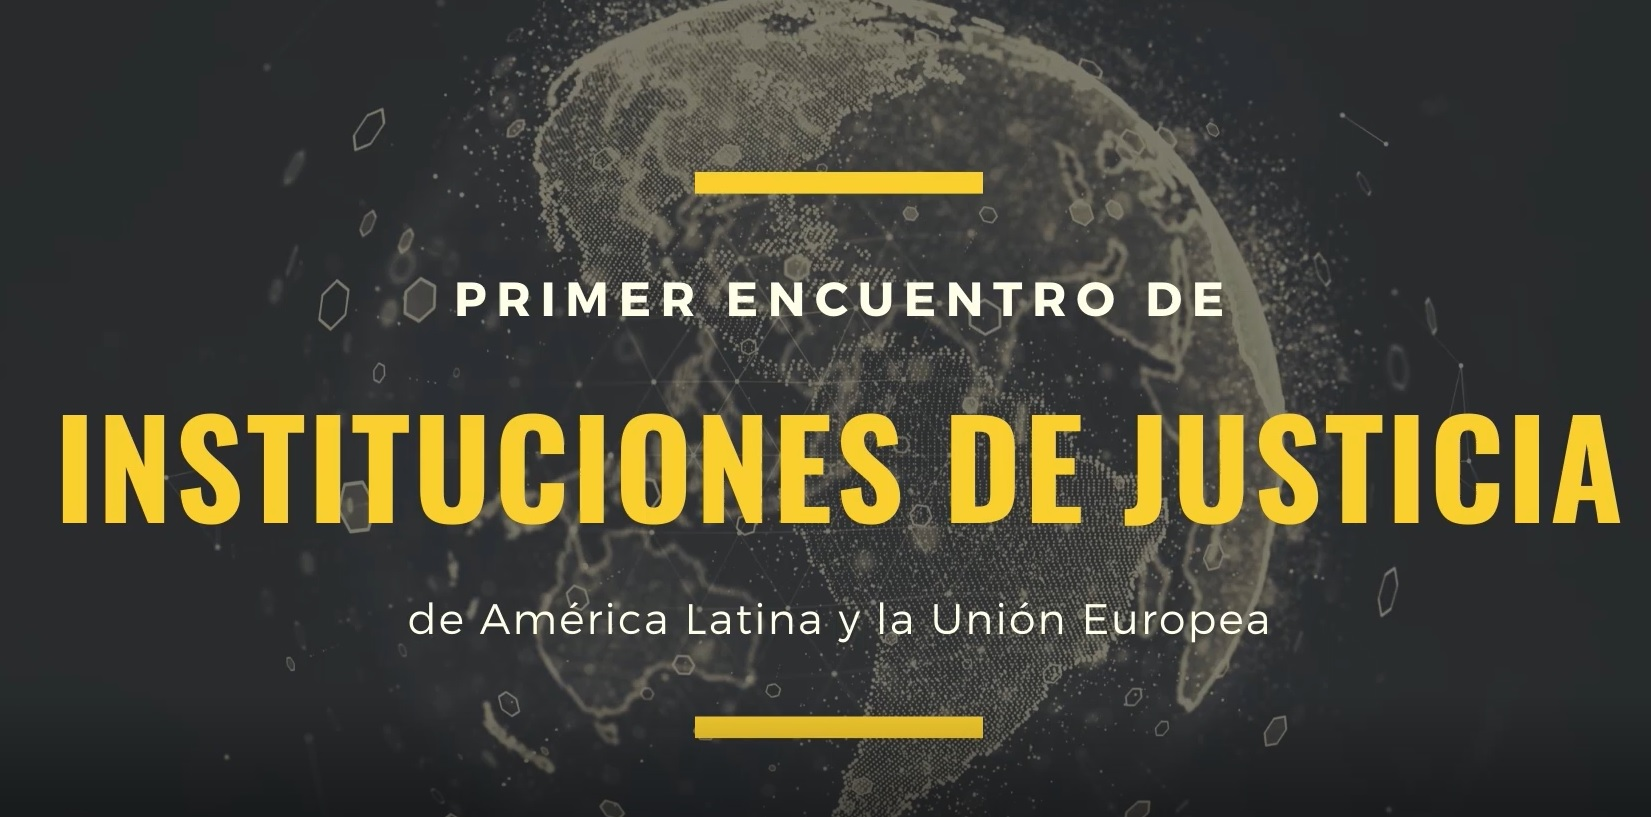 Necessary legal cooperation between the European Union and Latin America